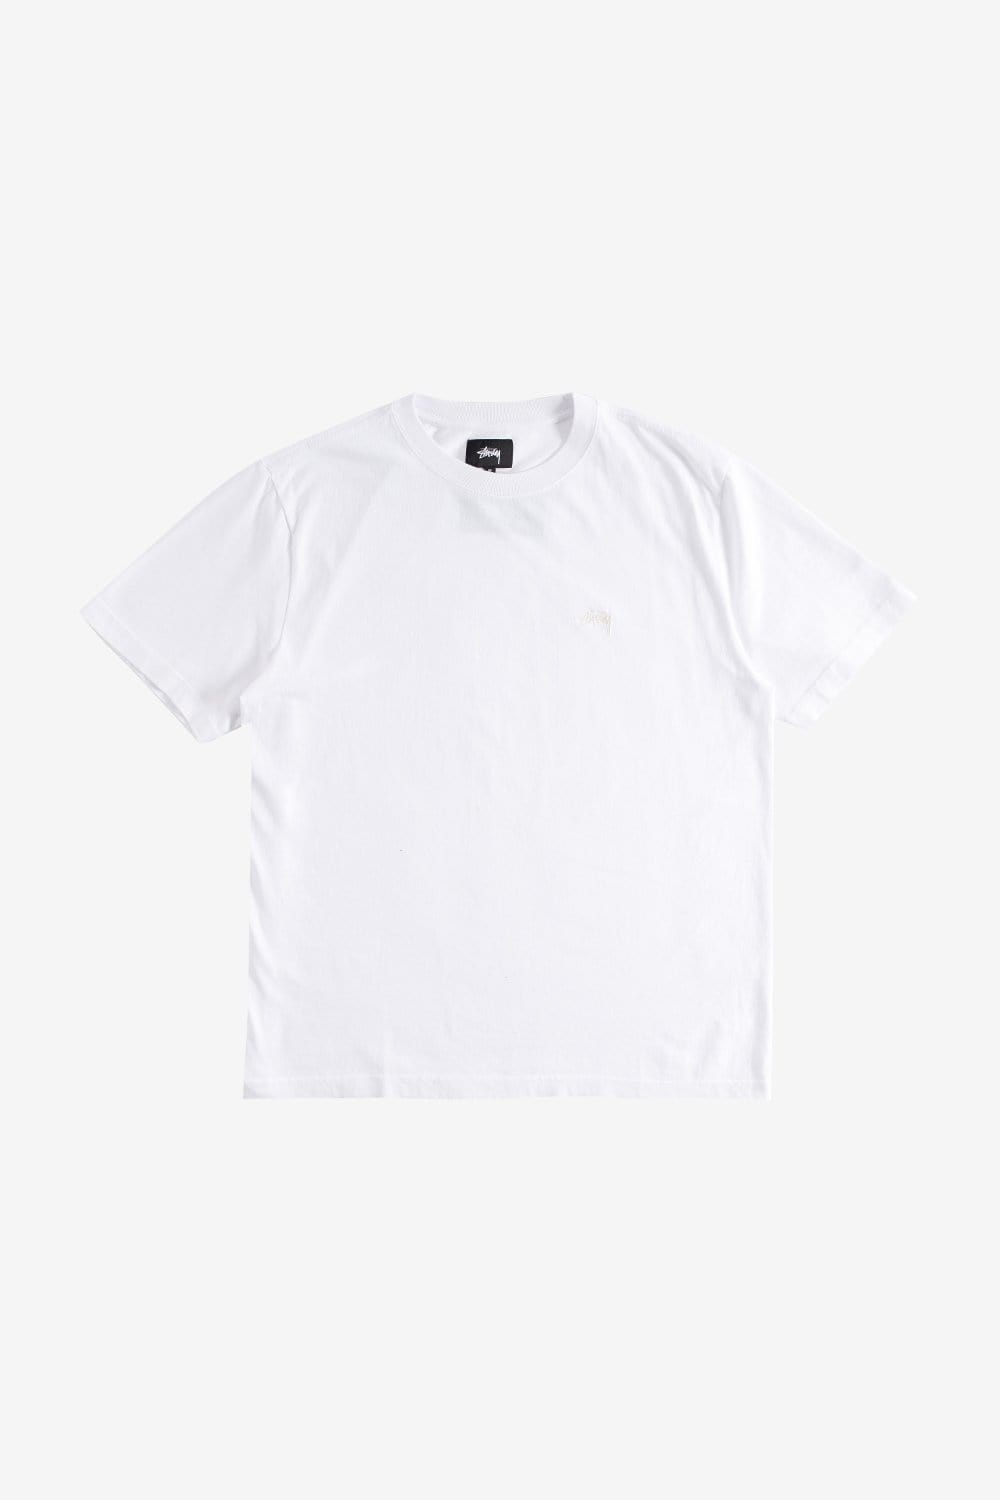 Stussy Apparel Stock Logo Short Sleeve T-Shirt White